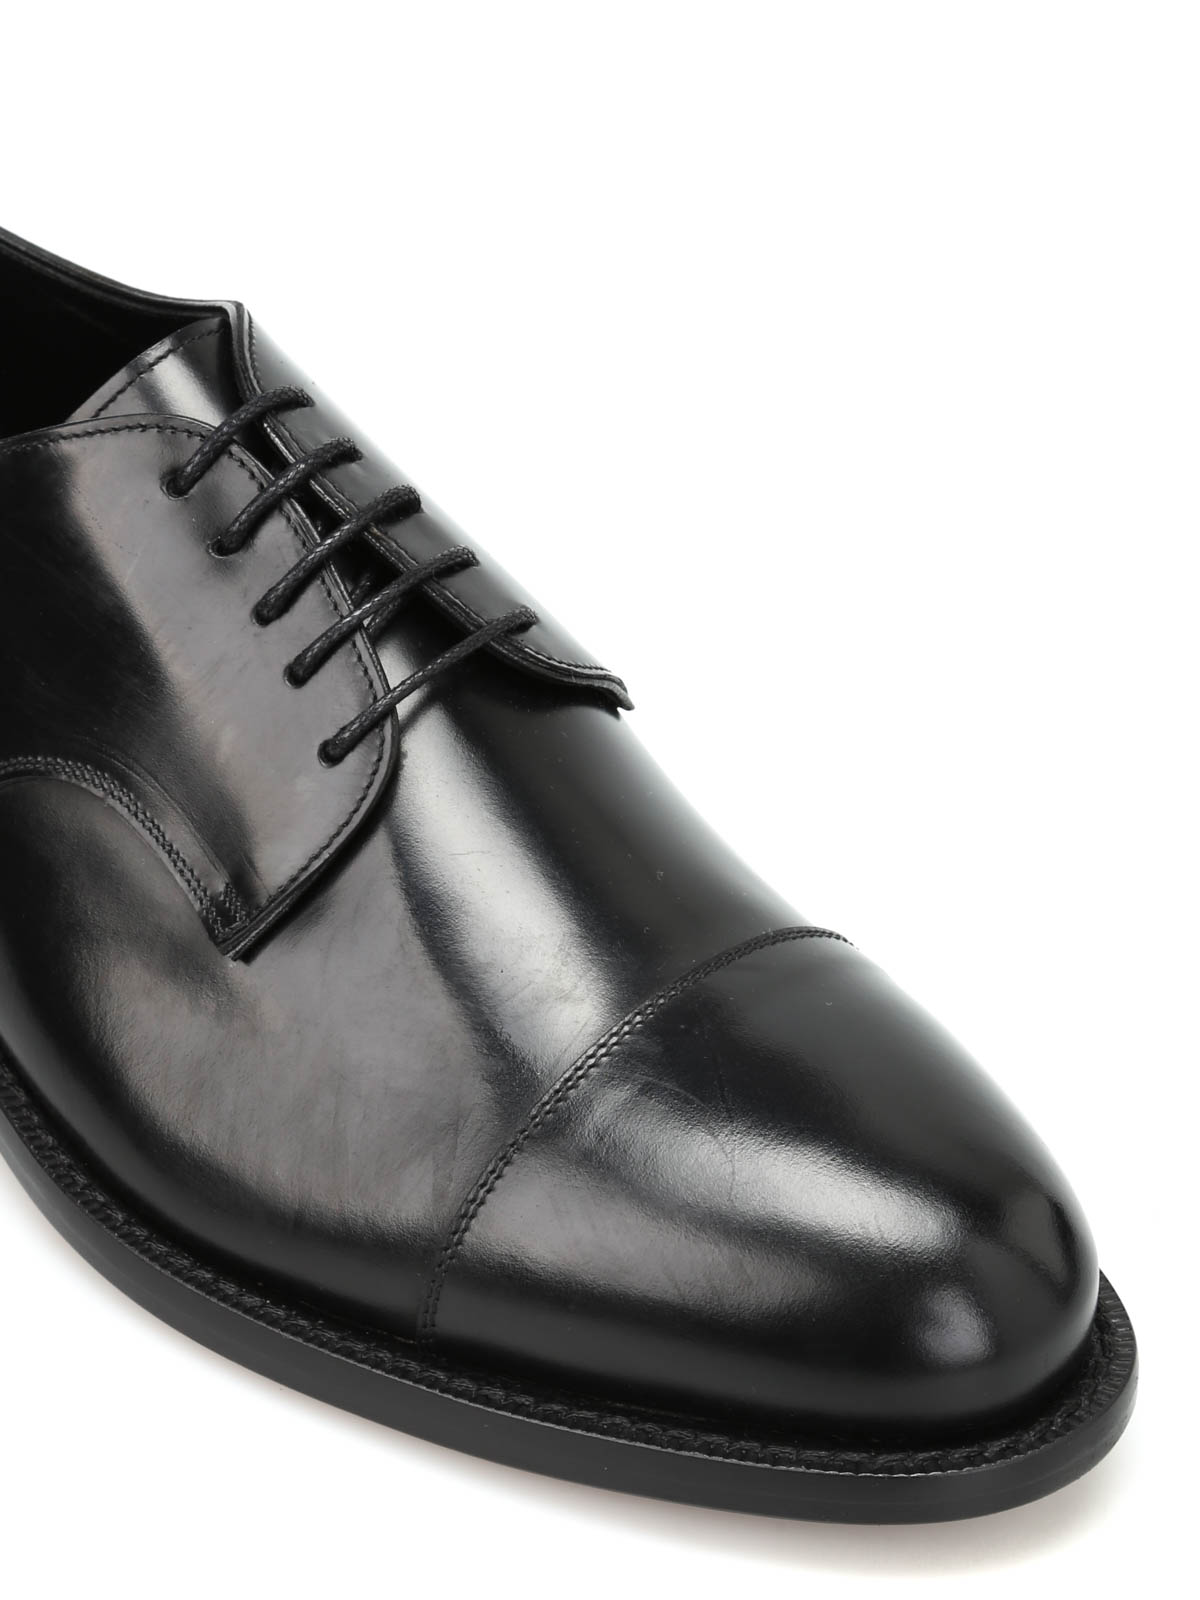 matte brushed leather derby by belsire classic shoes ikrix